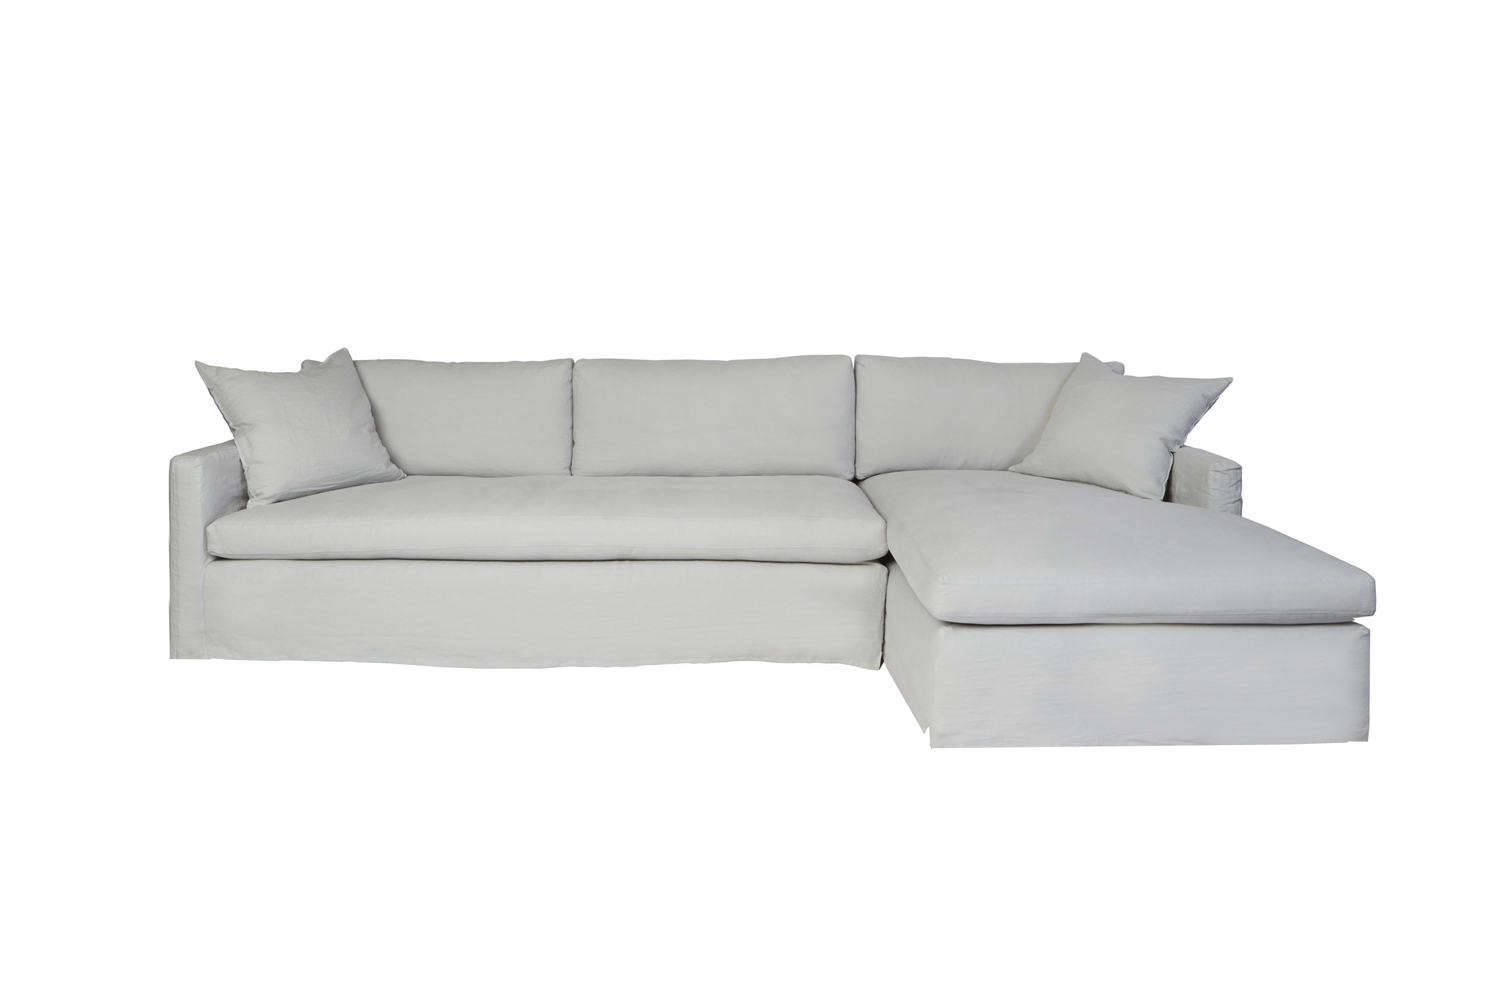 Chaise Spoon 10 Easy Pieces Sectional Chaise Sofas Remodelista Sourcebook